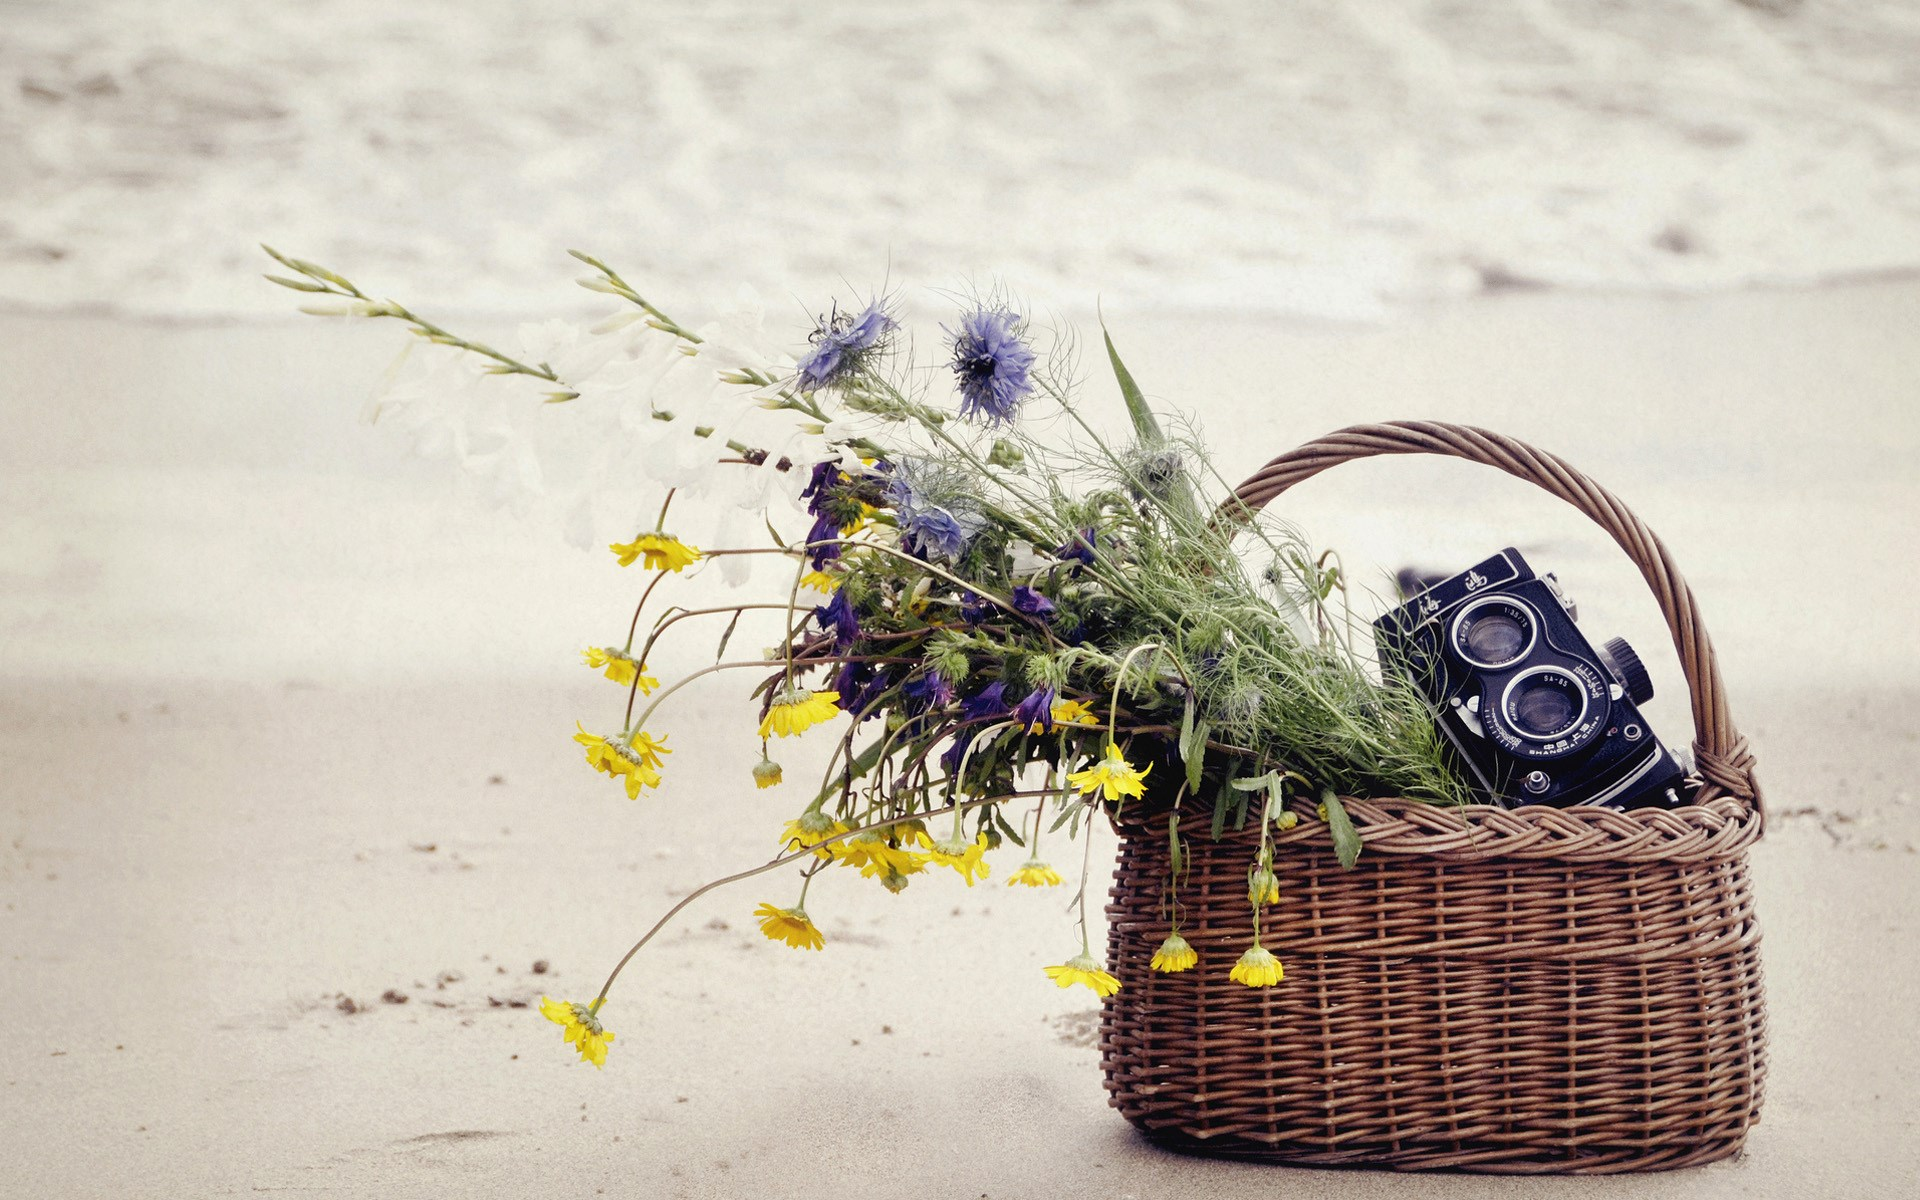 Basket Flowers Camera Sand Sea Beach